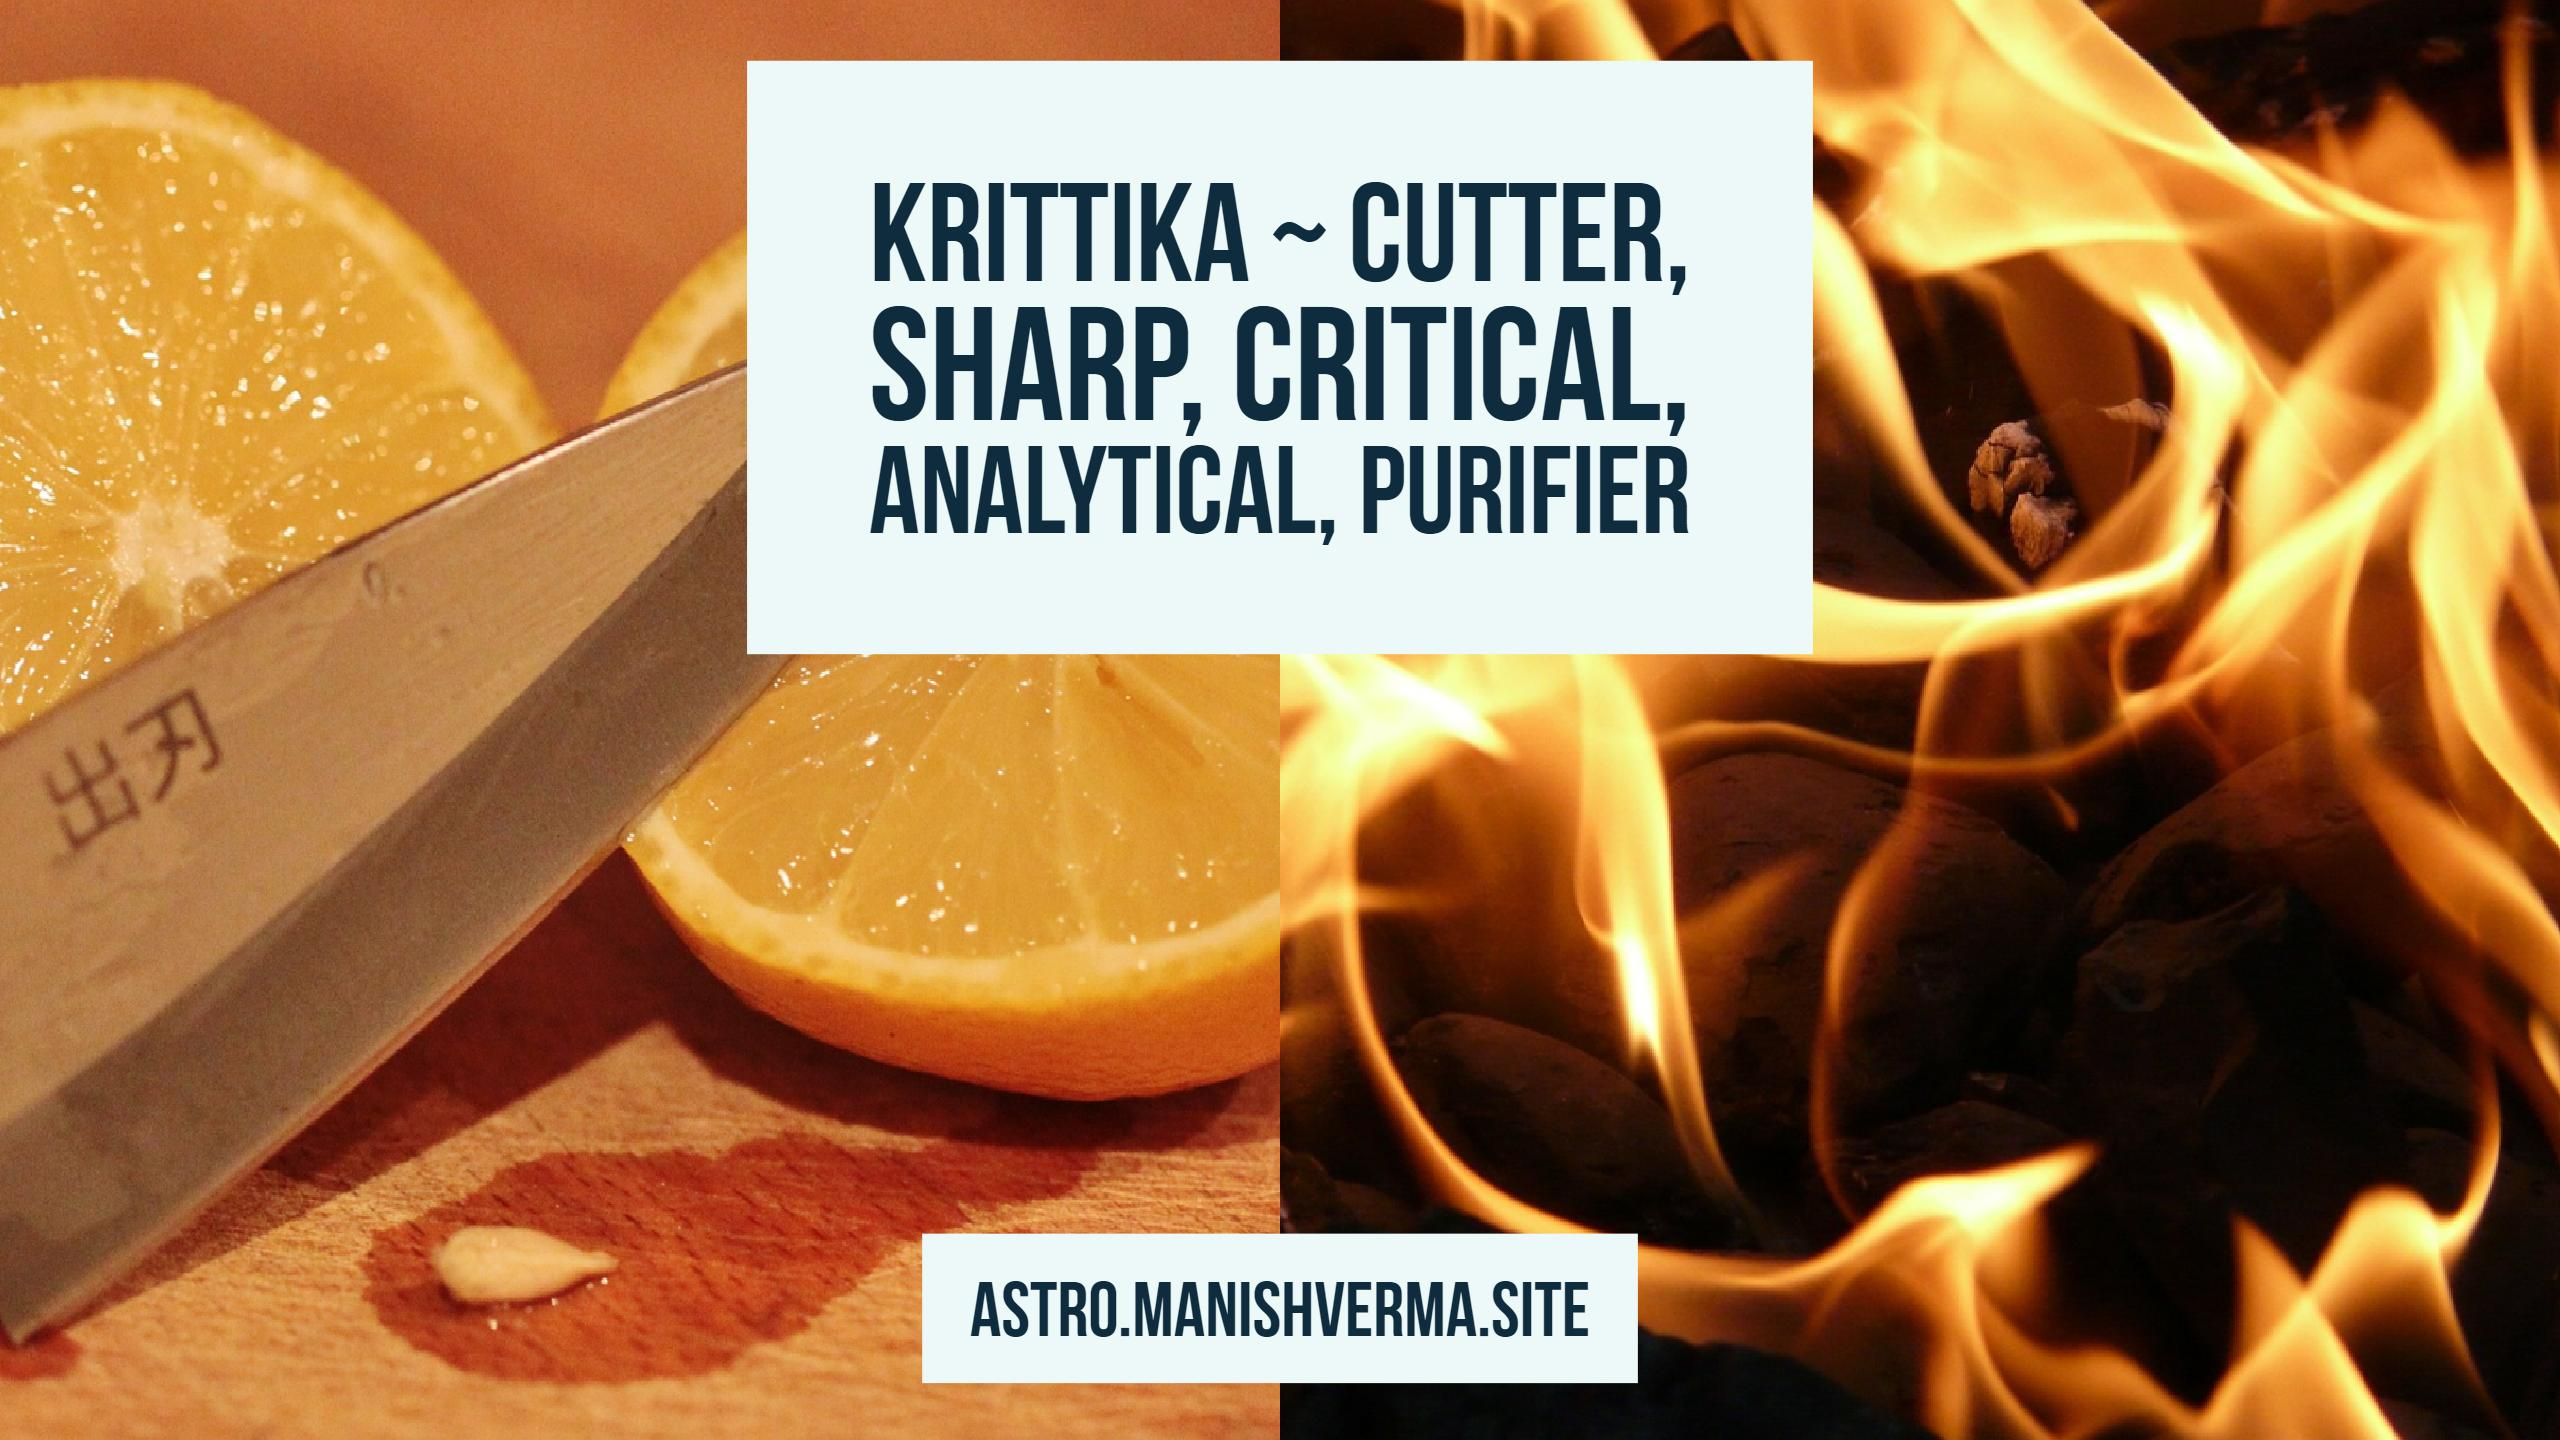 Krittika Nakshatra ~ Cutter, Sharp, Critical, Analytical, Purifier